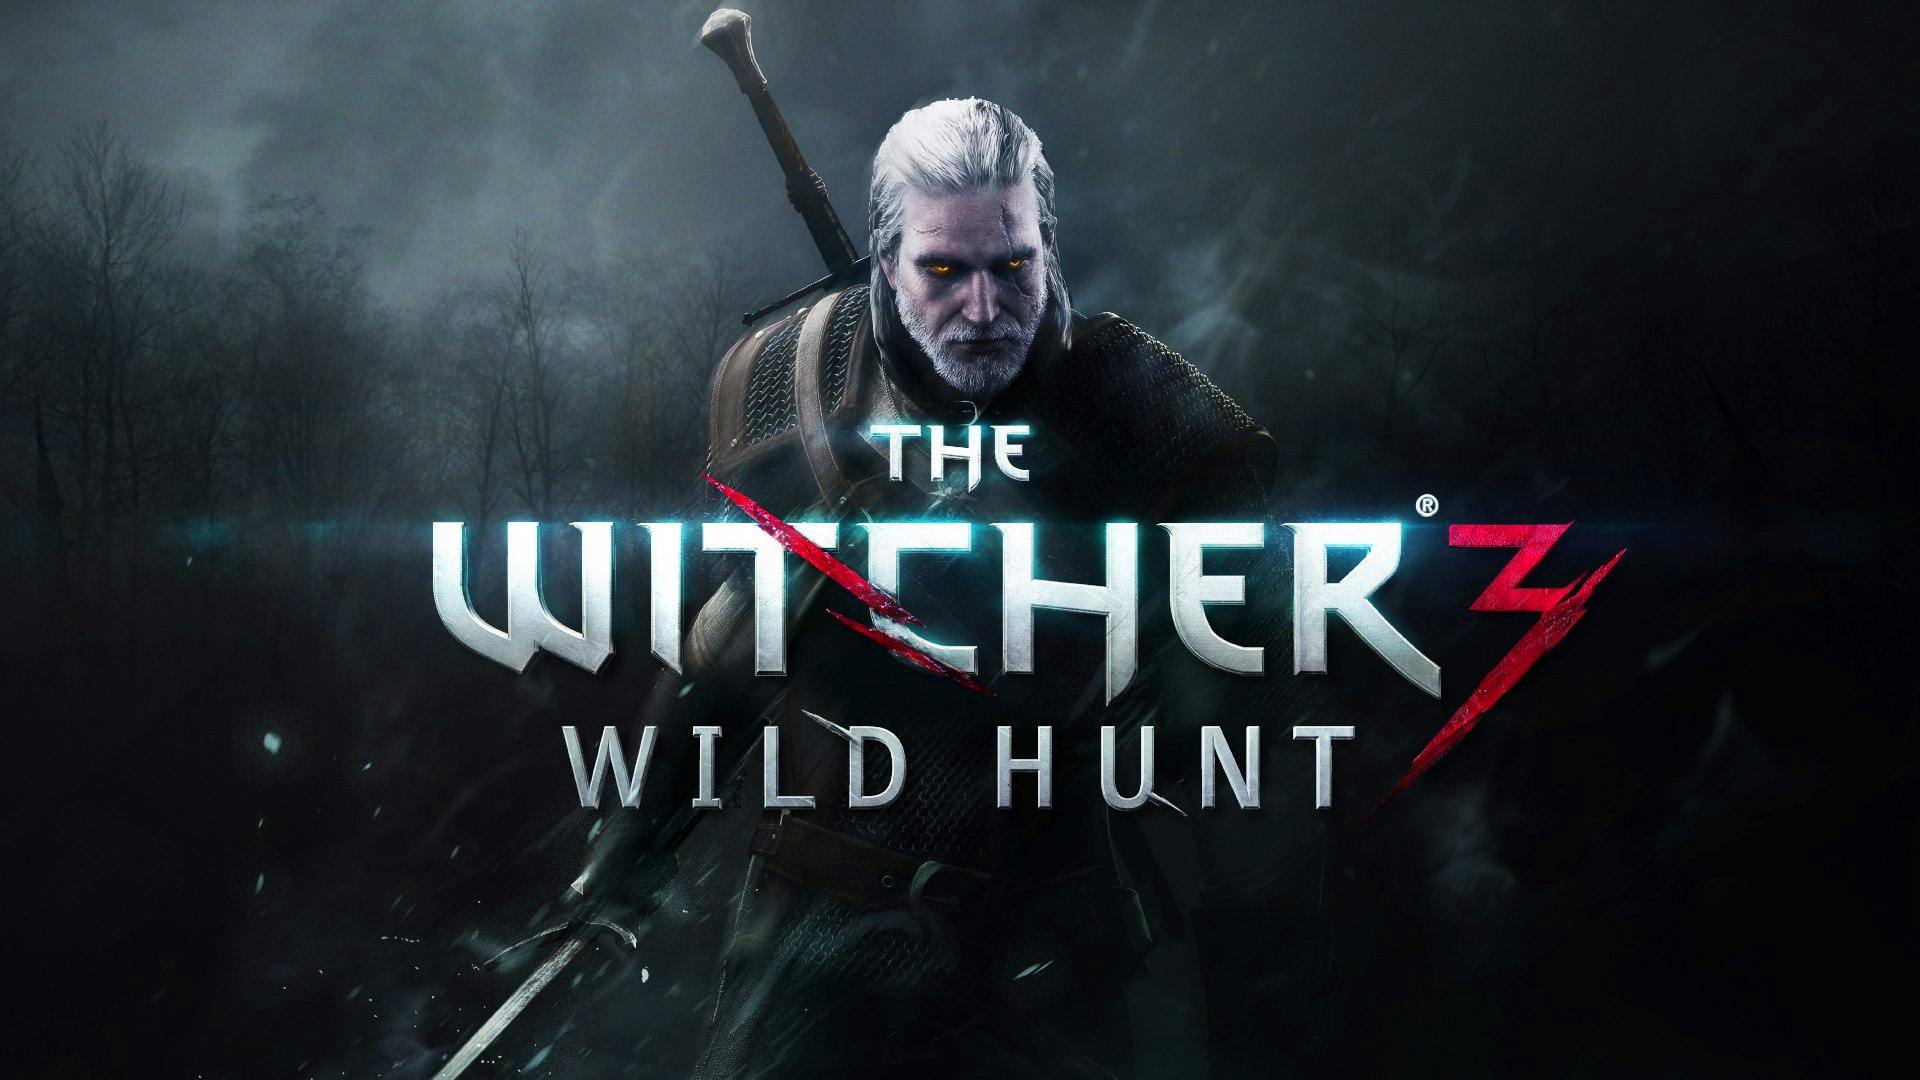 The Witcher 3 Video